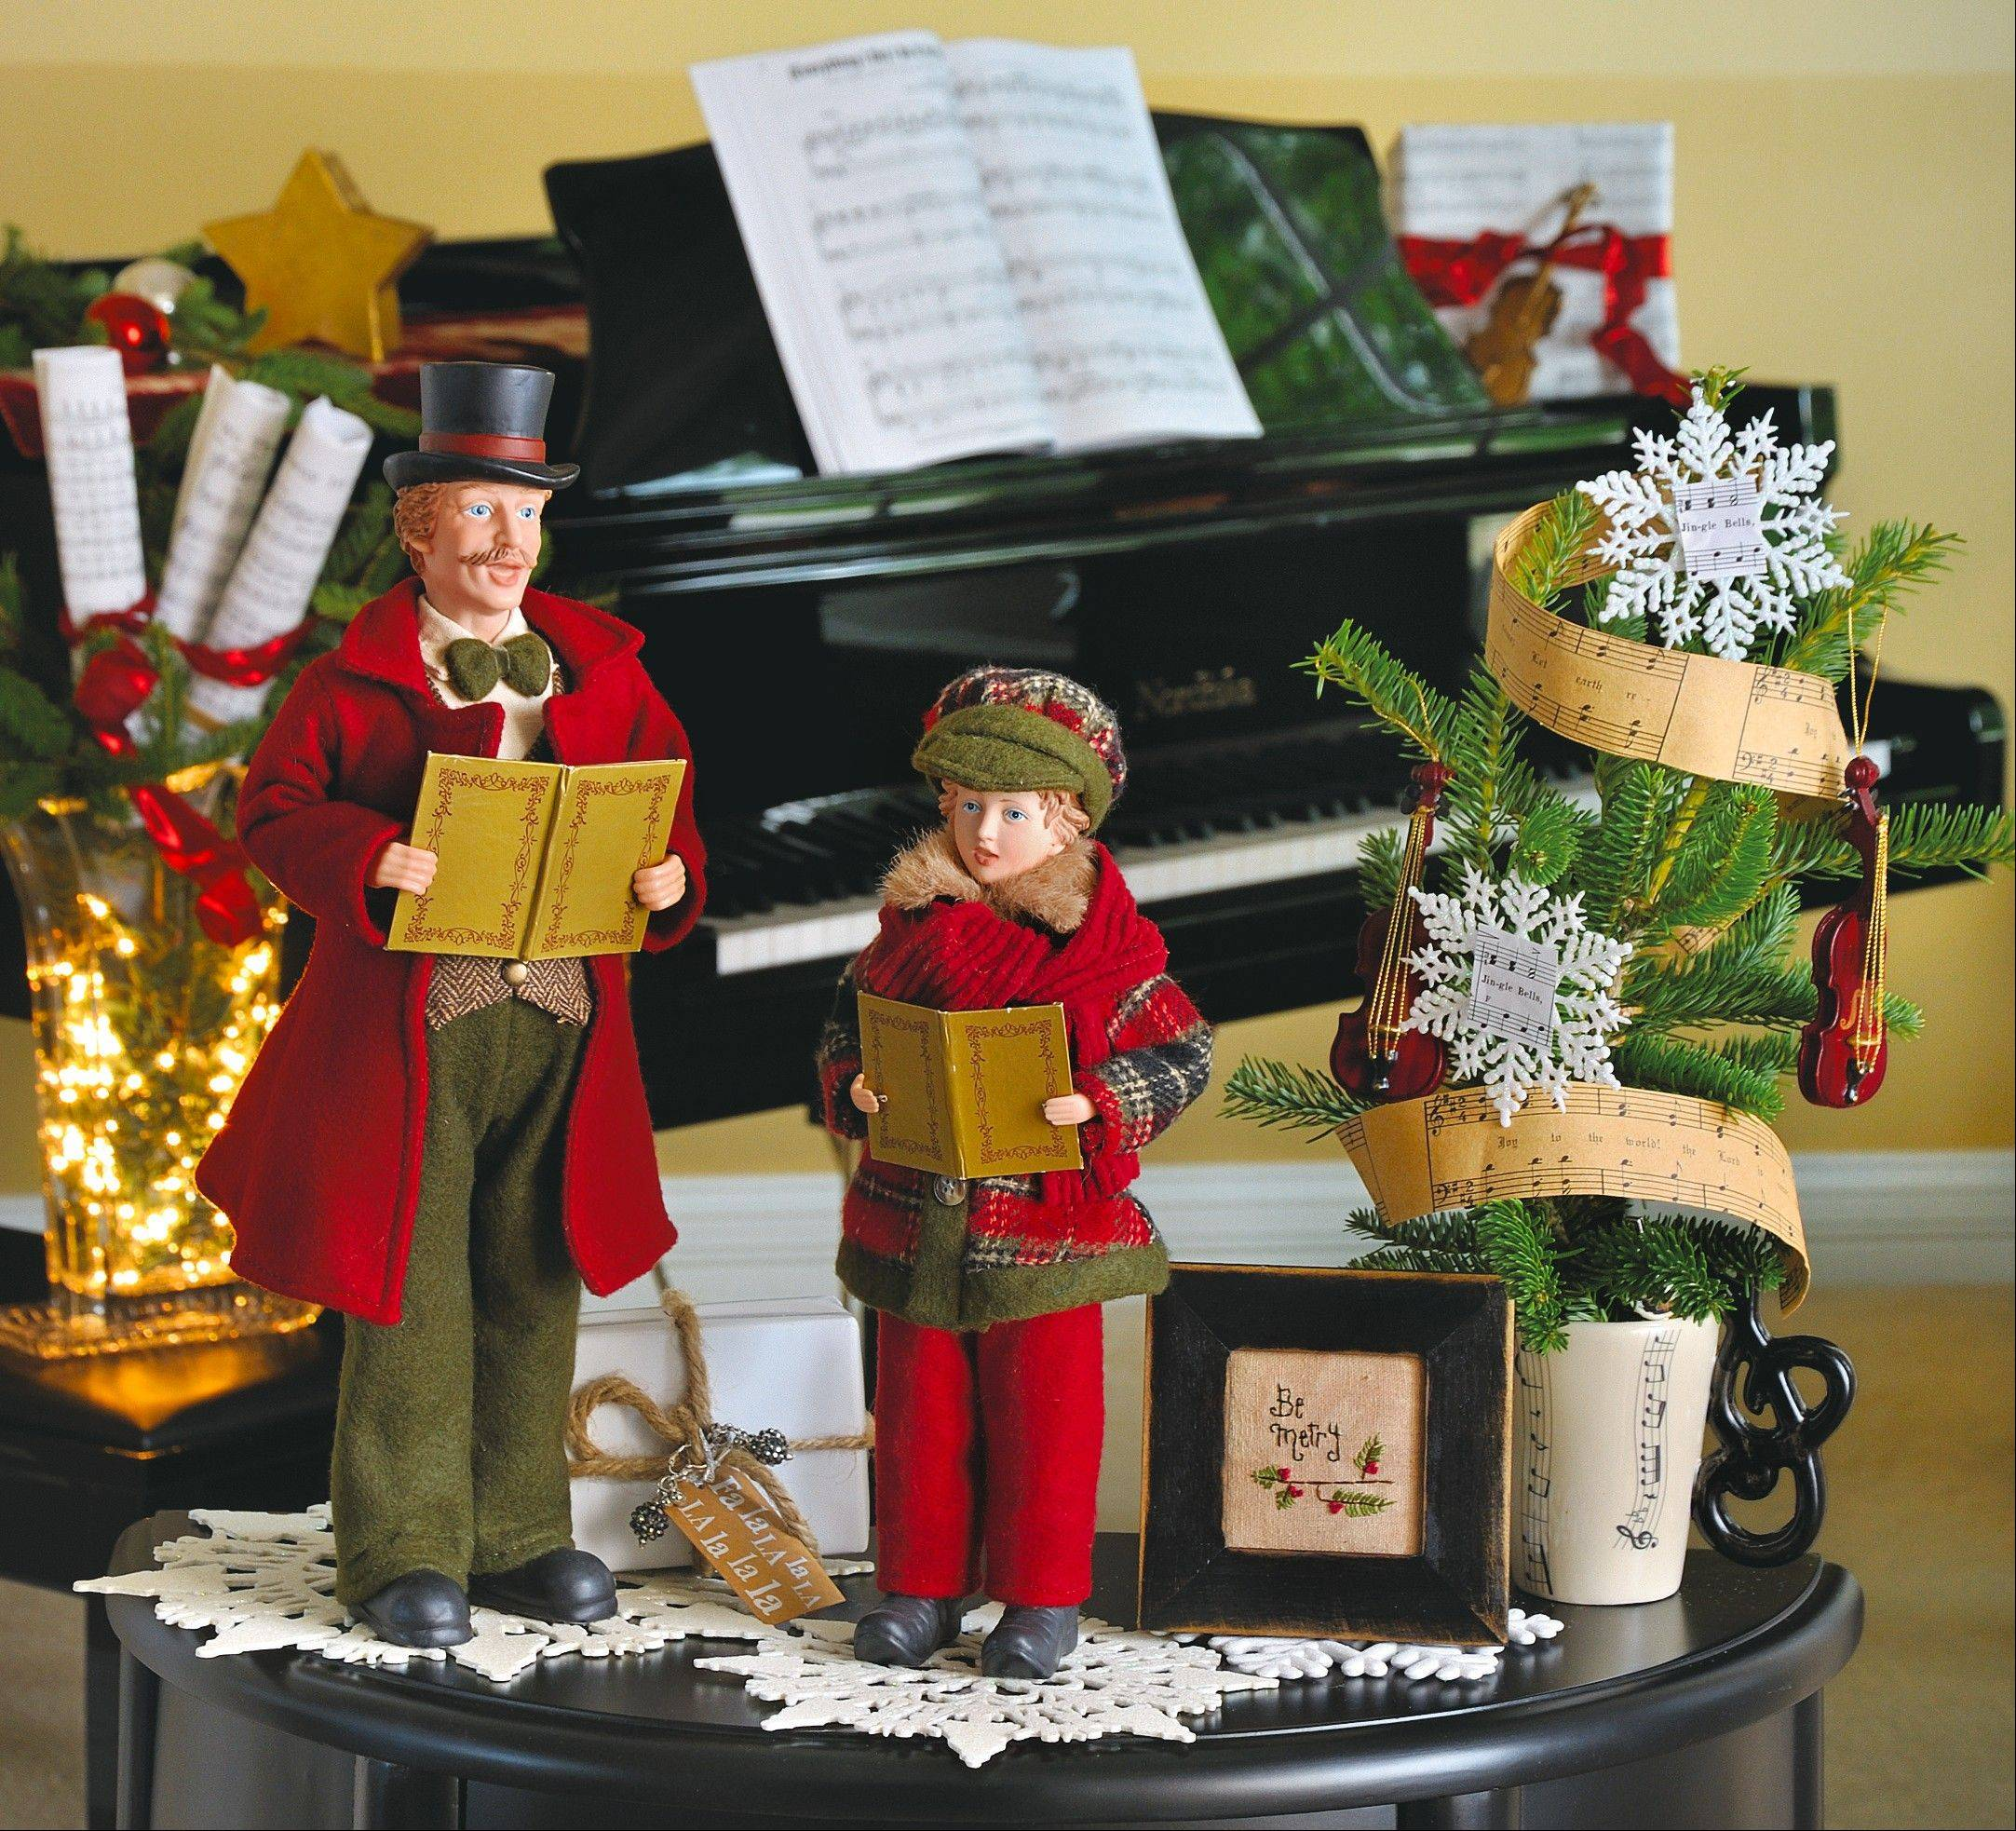 Music to my ears: These back-in-time caroler figures sound an old-fashioned note as the centerpiece of this musical vignette.